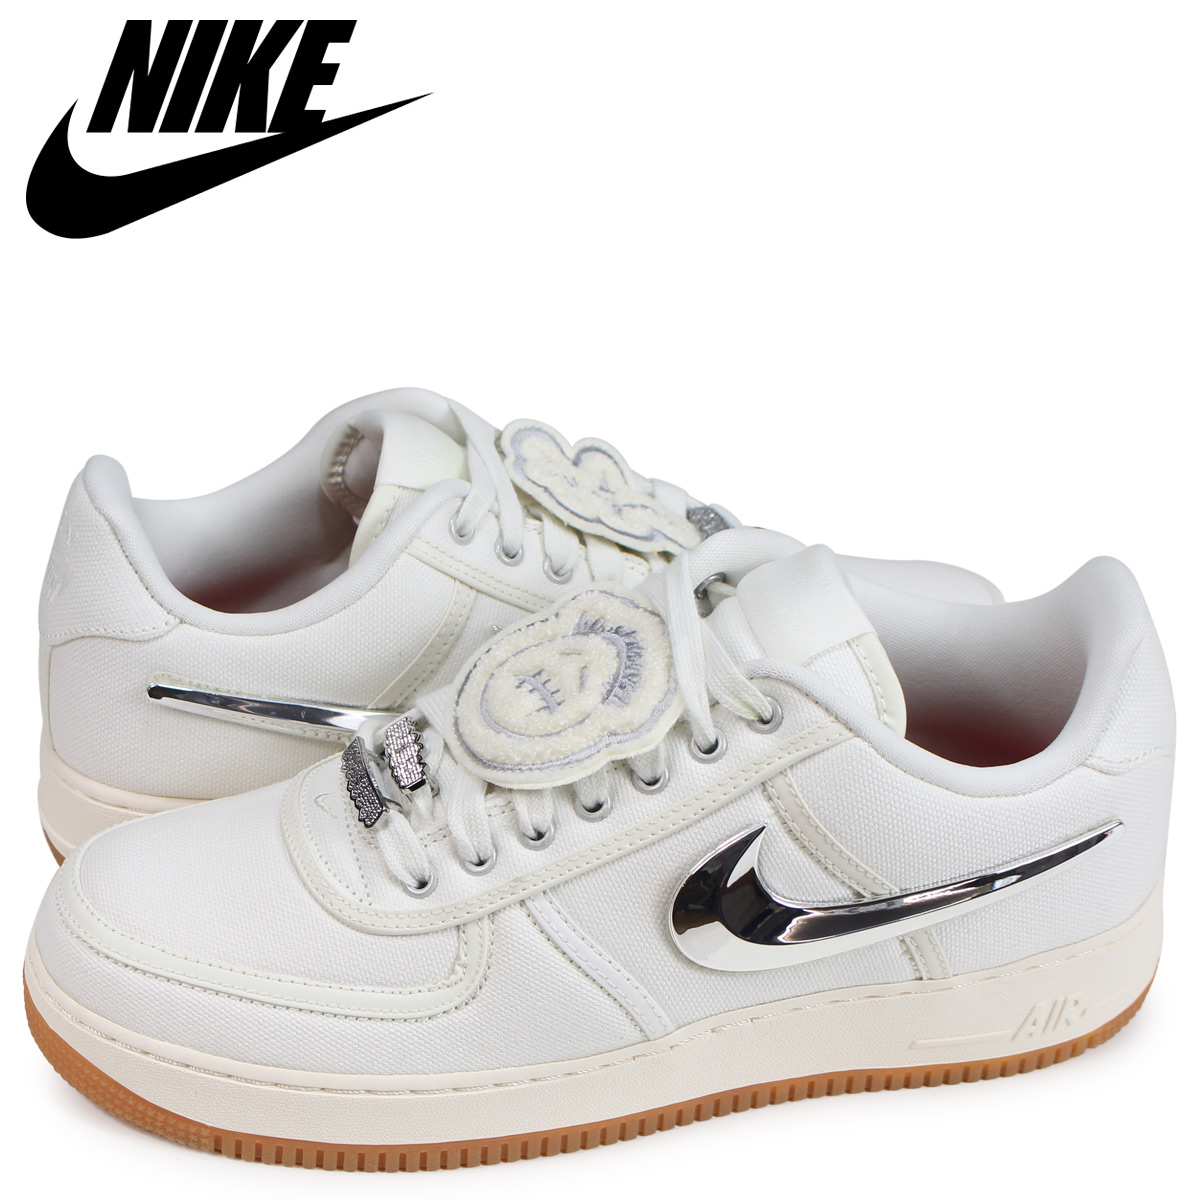 info for 92ccd de21c NIKE AIR FORCE 1 LOW TRAVIS SCOTT Nike air force 1 sneakers men white  AQ4211-101